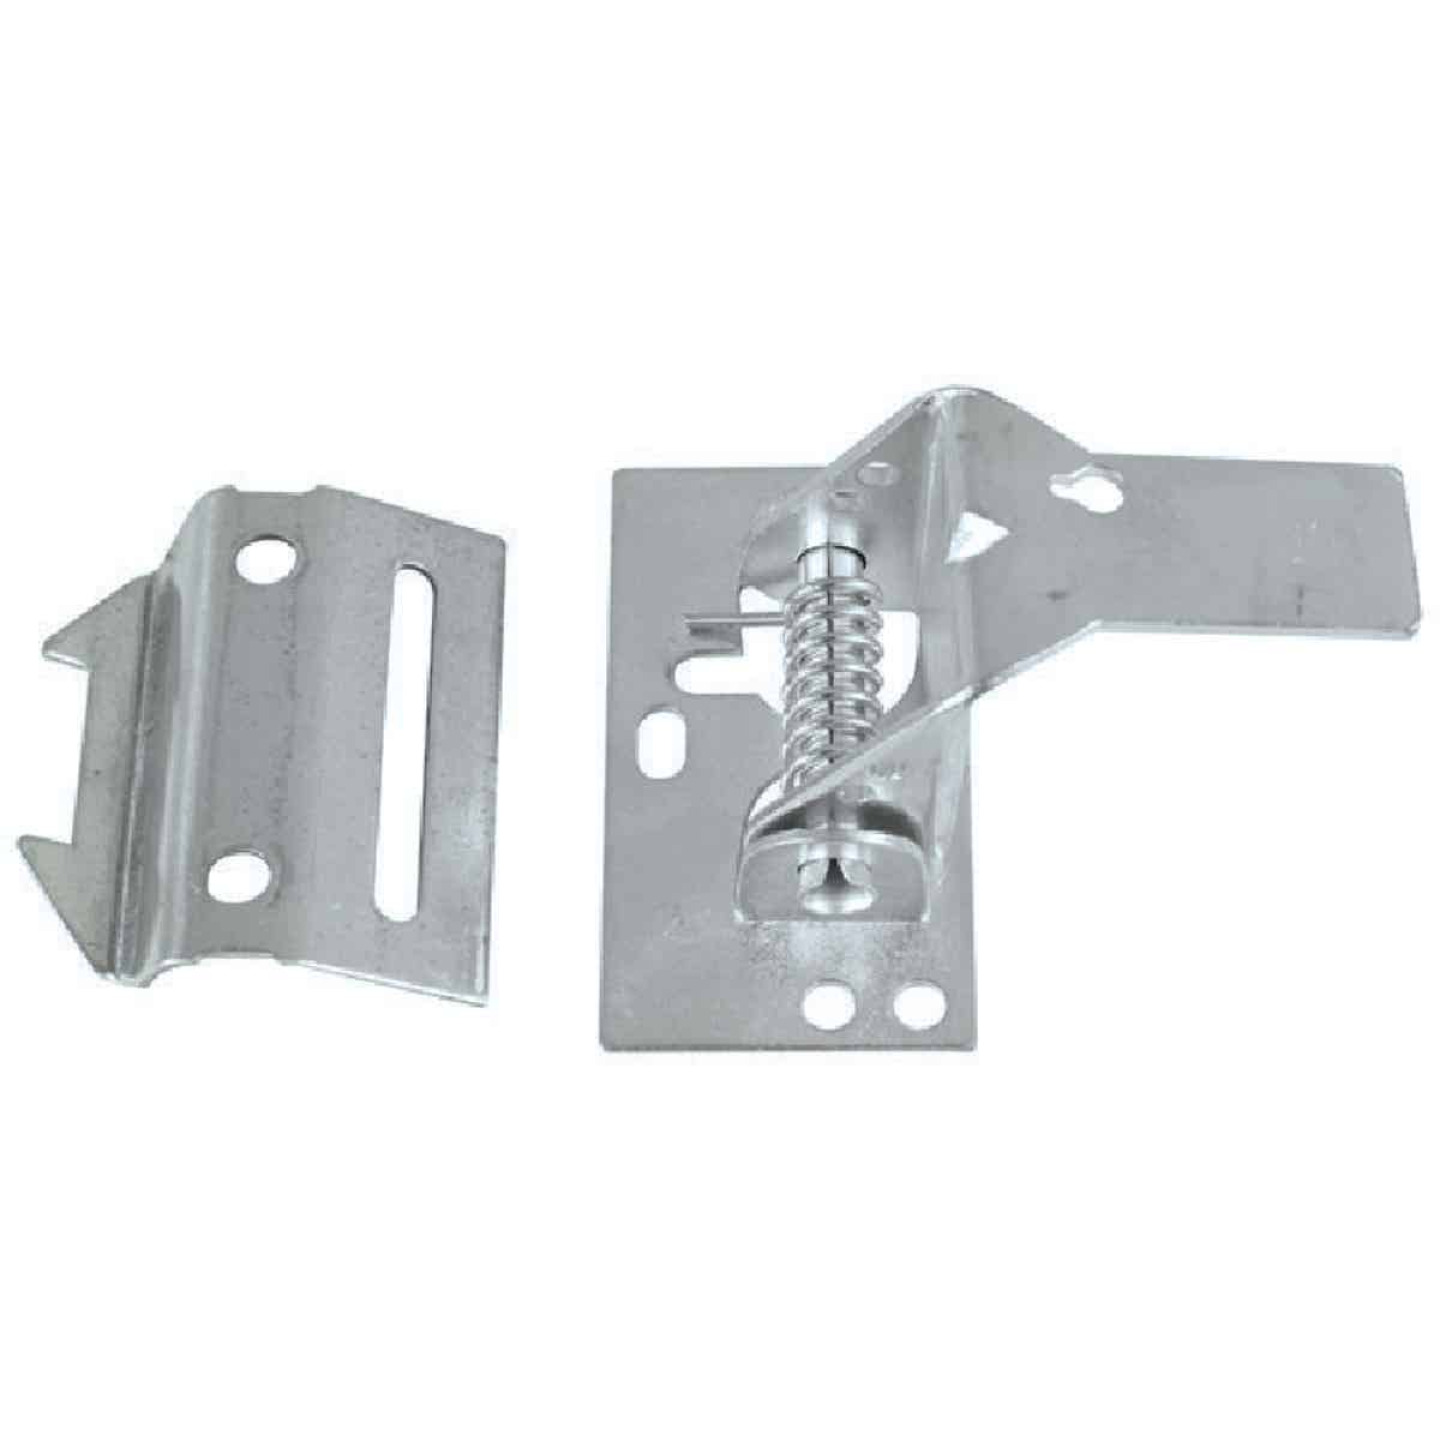 National Garage Door Snap Lock with Strike Image 2